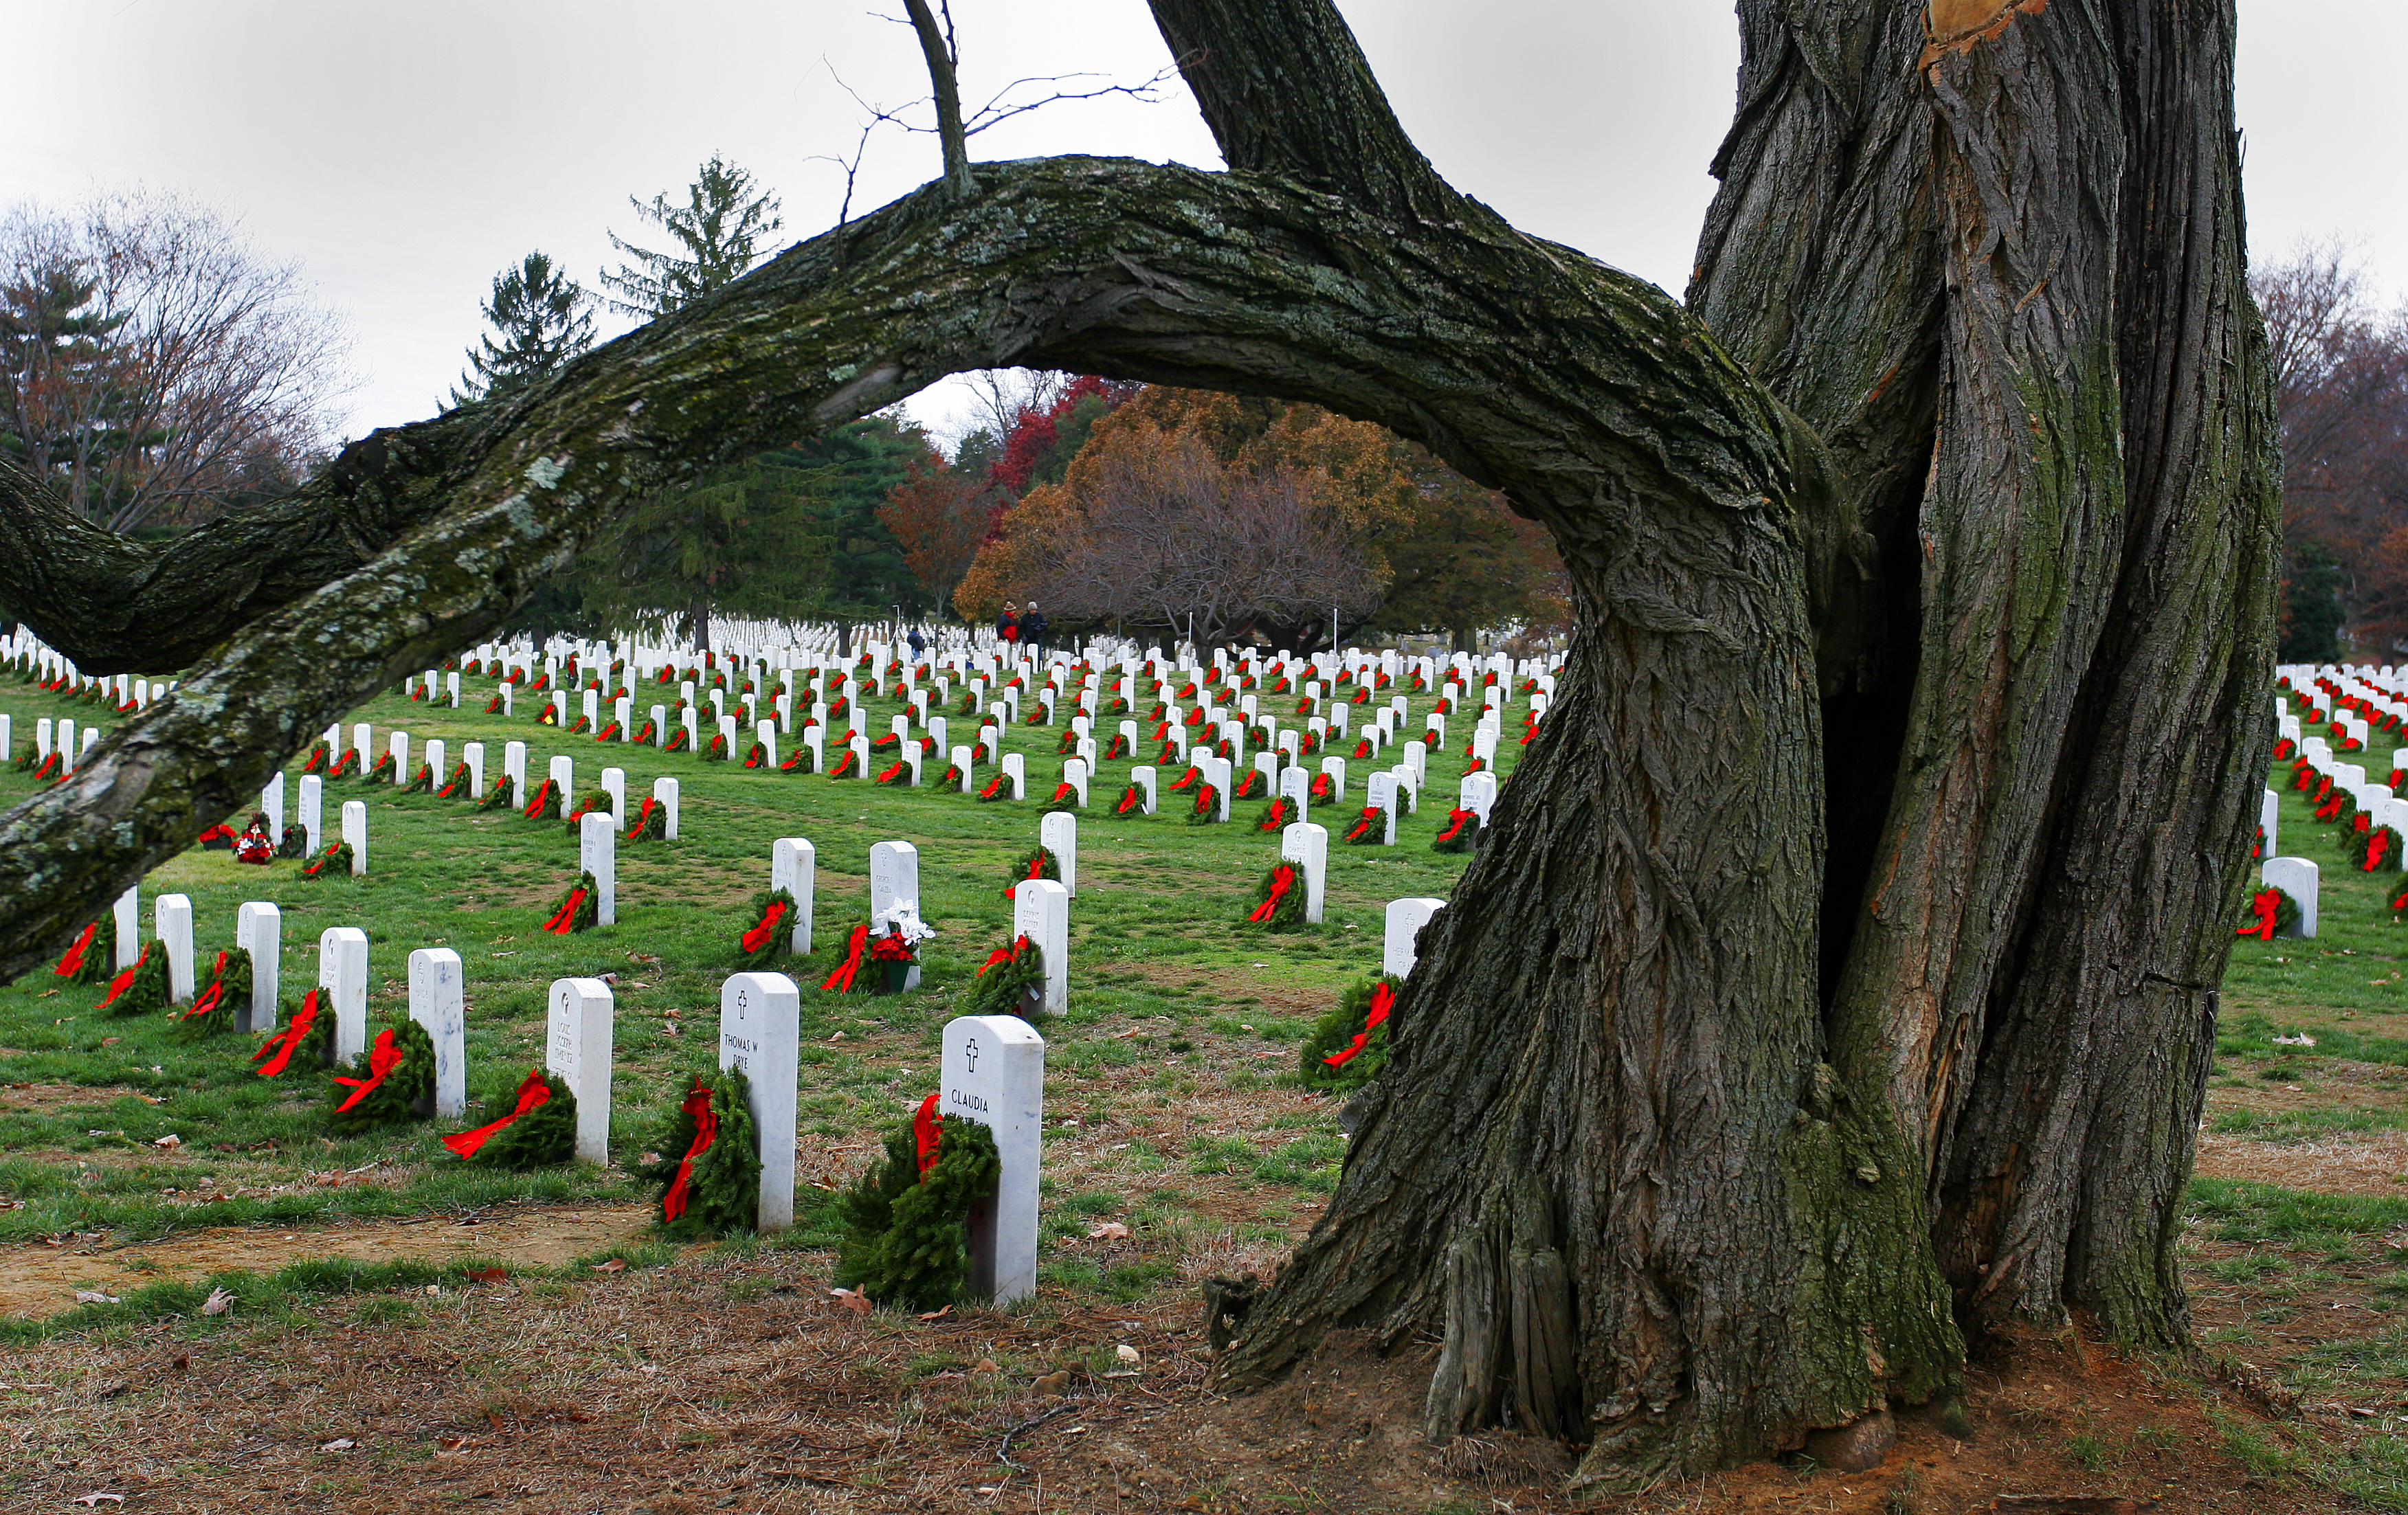 Free, Public Domain Image: Military Memorial Wreaths On Grave.